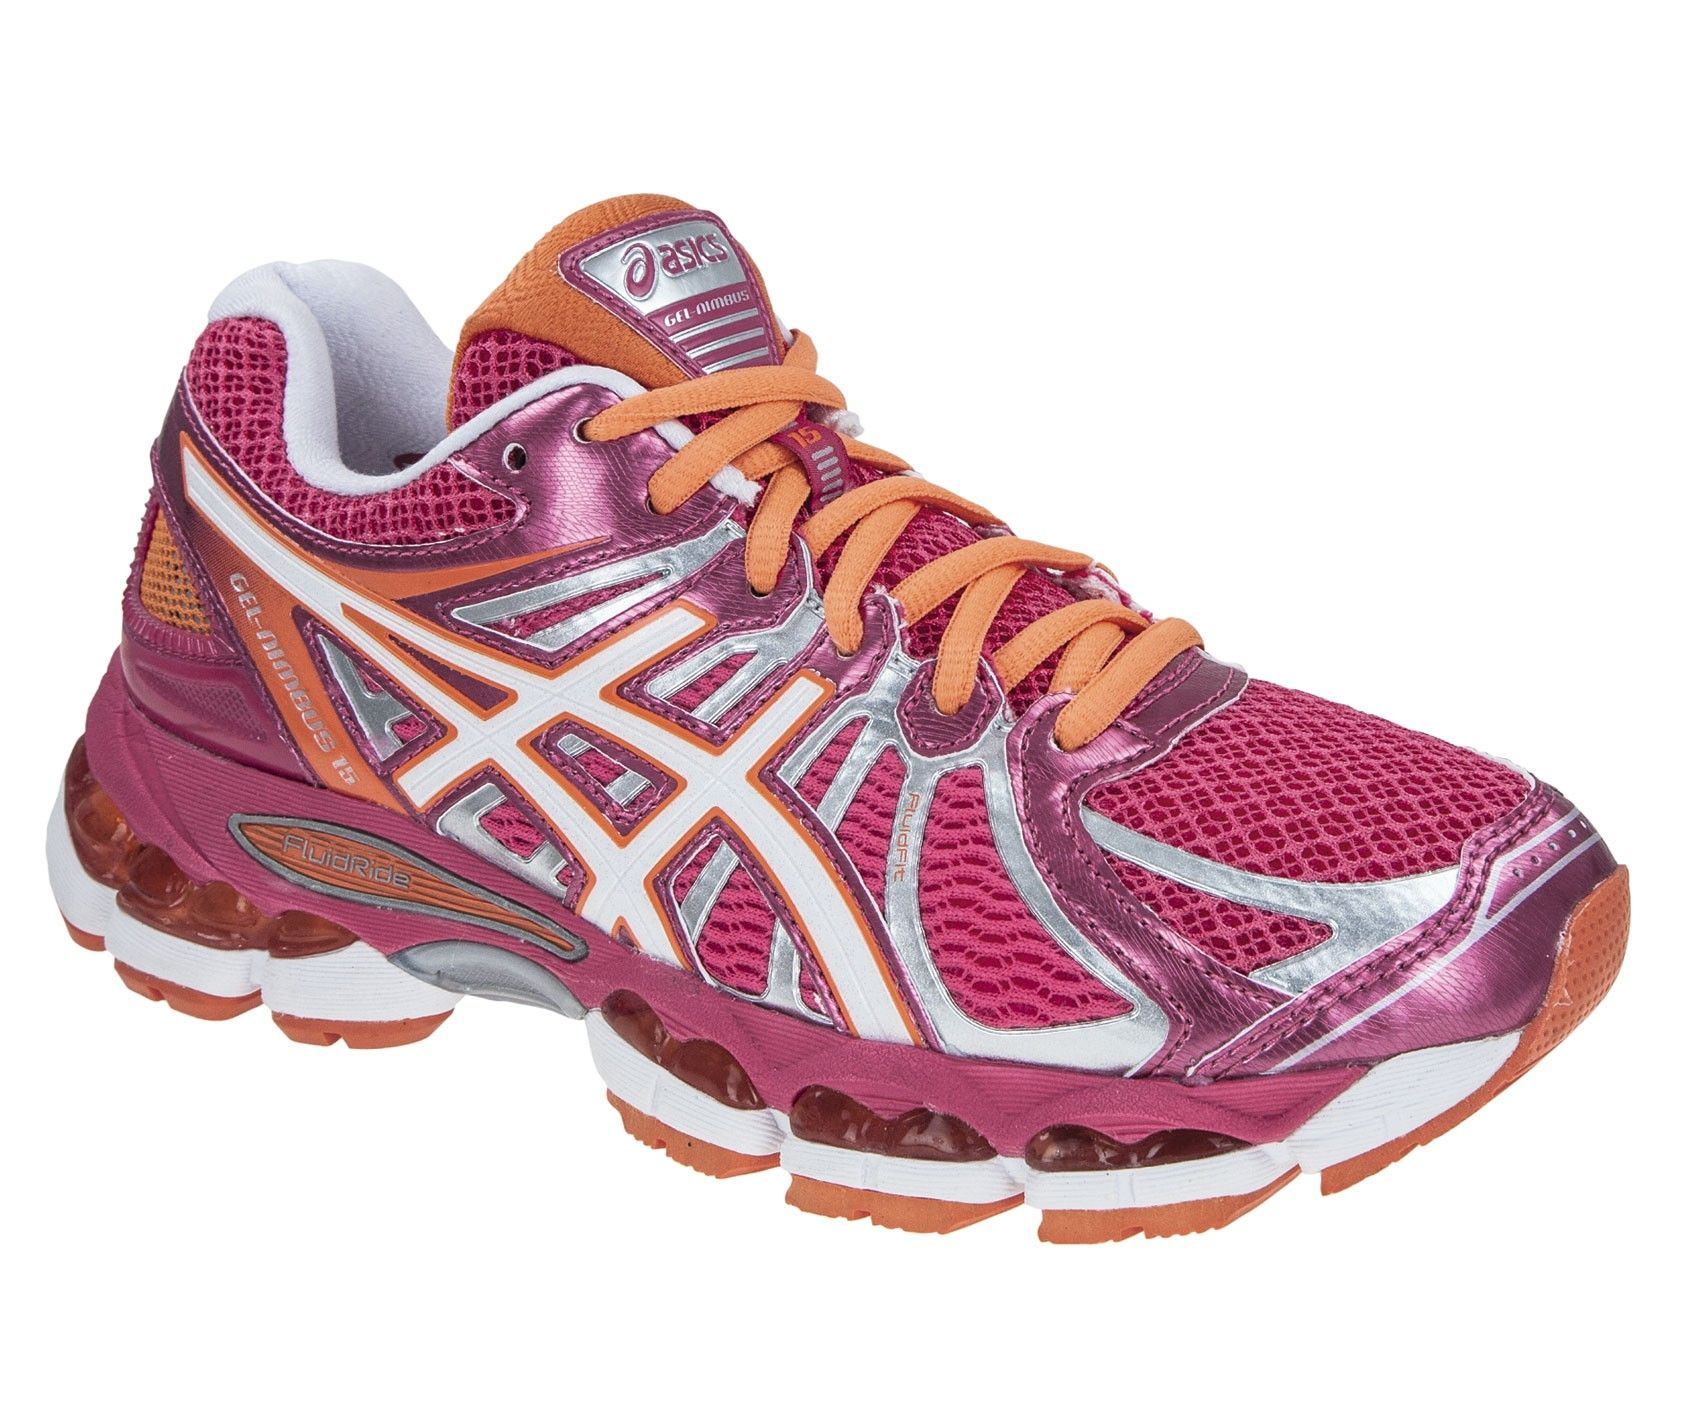 Asics Gel Nimbus 15 in Raspberry. It's a running shoe but it can take you  on a 6 mile trek / walk / run on gently undulating well worn paths like the  ...